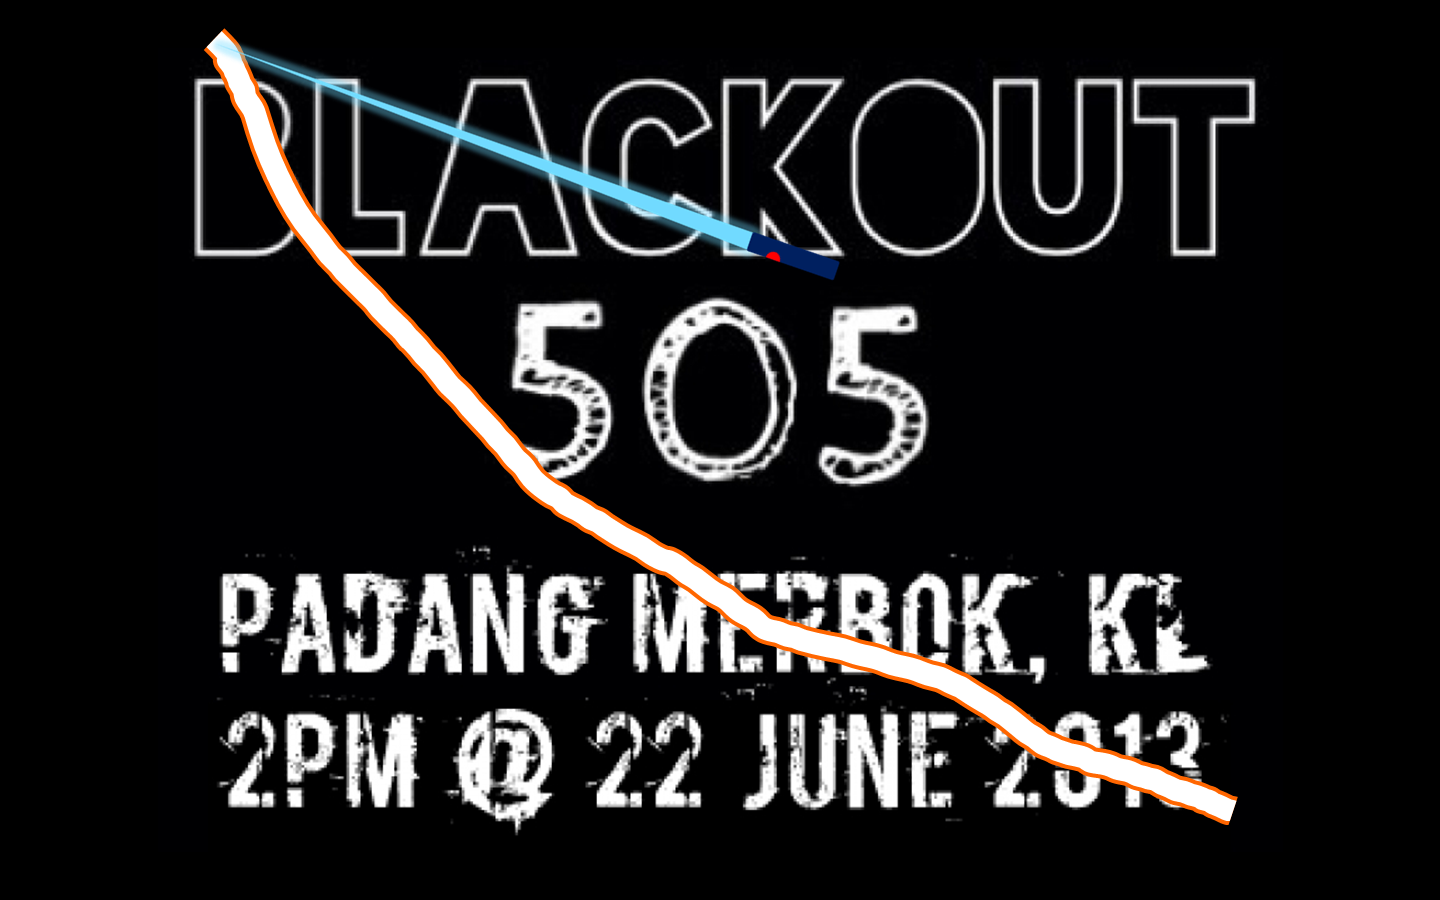 Say NO! to BLACKOUT 505